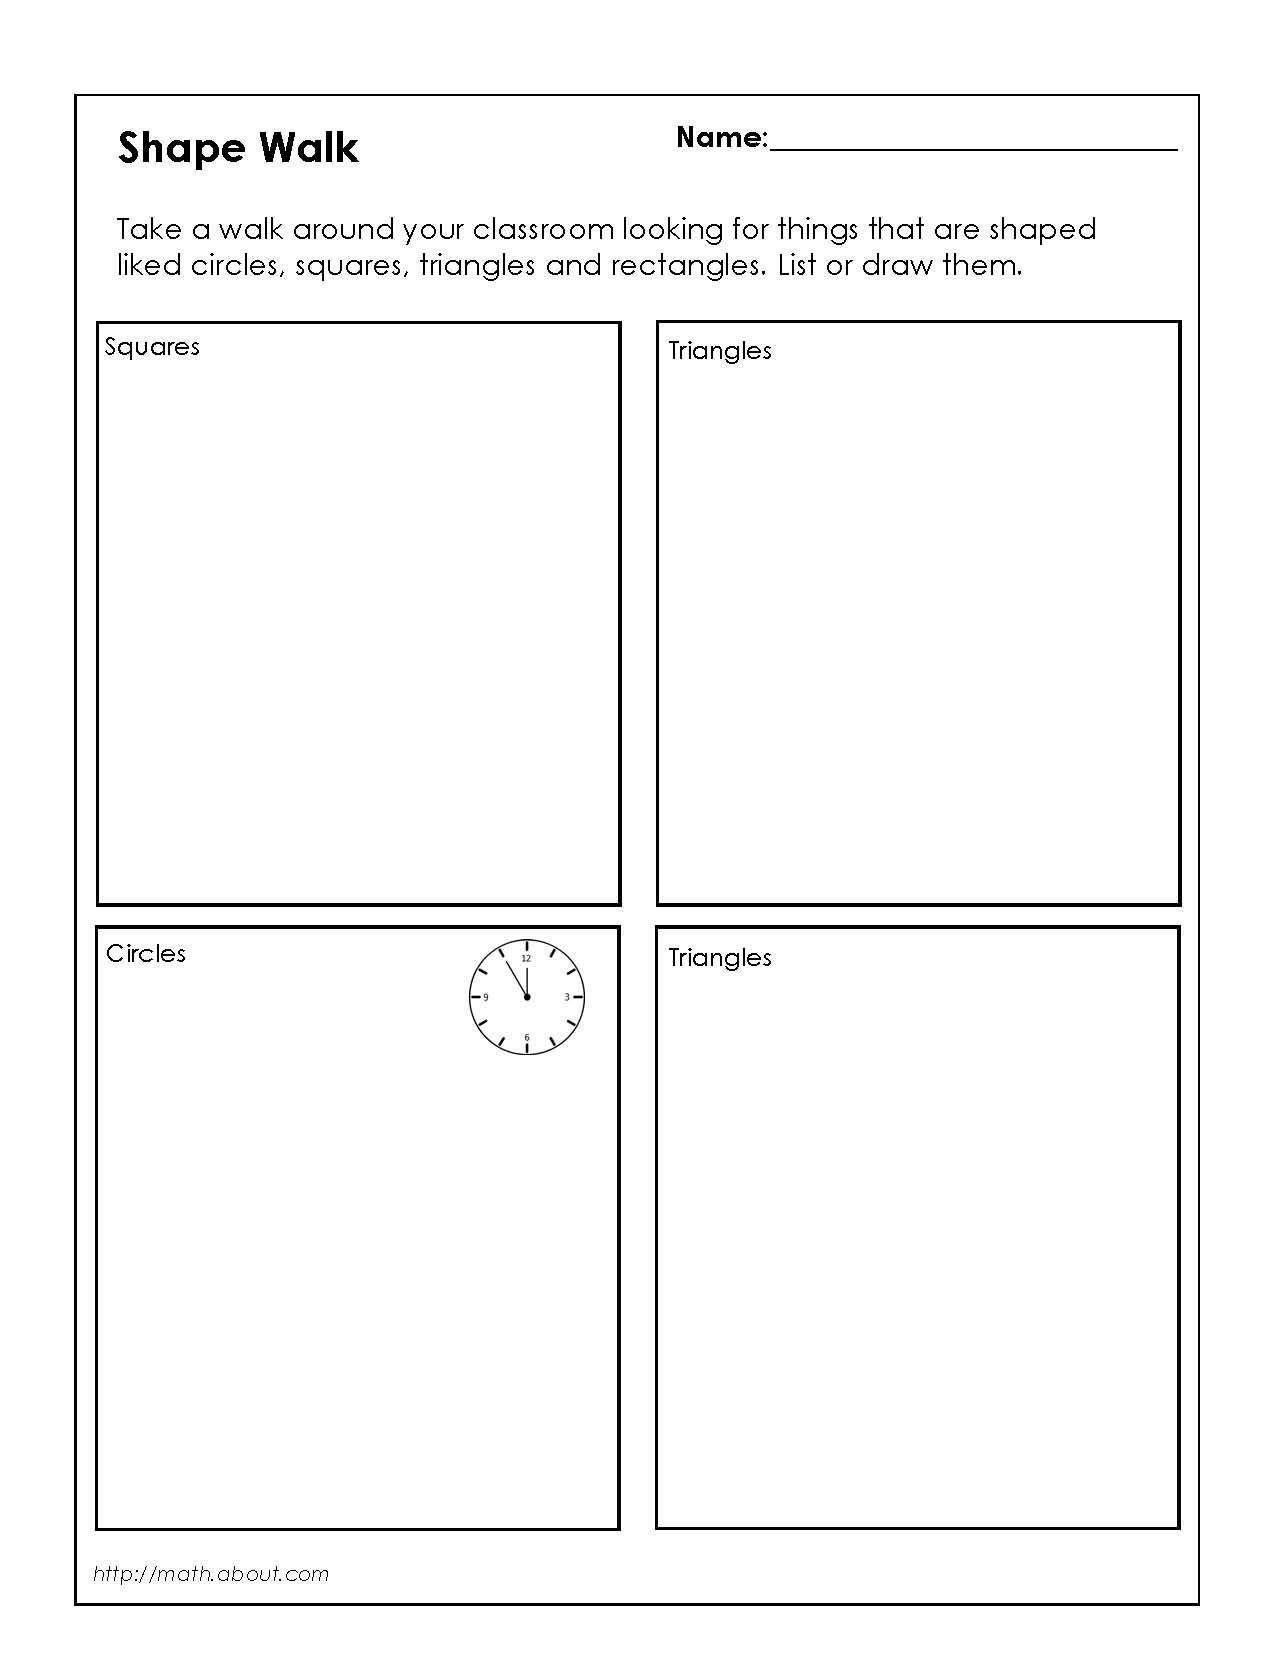 Polygon Worksheets for 2nd Grade 1st Grade Geometry Worksheets for Students